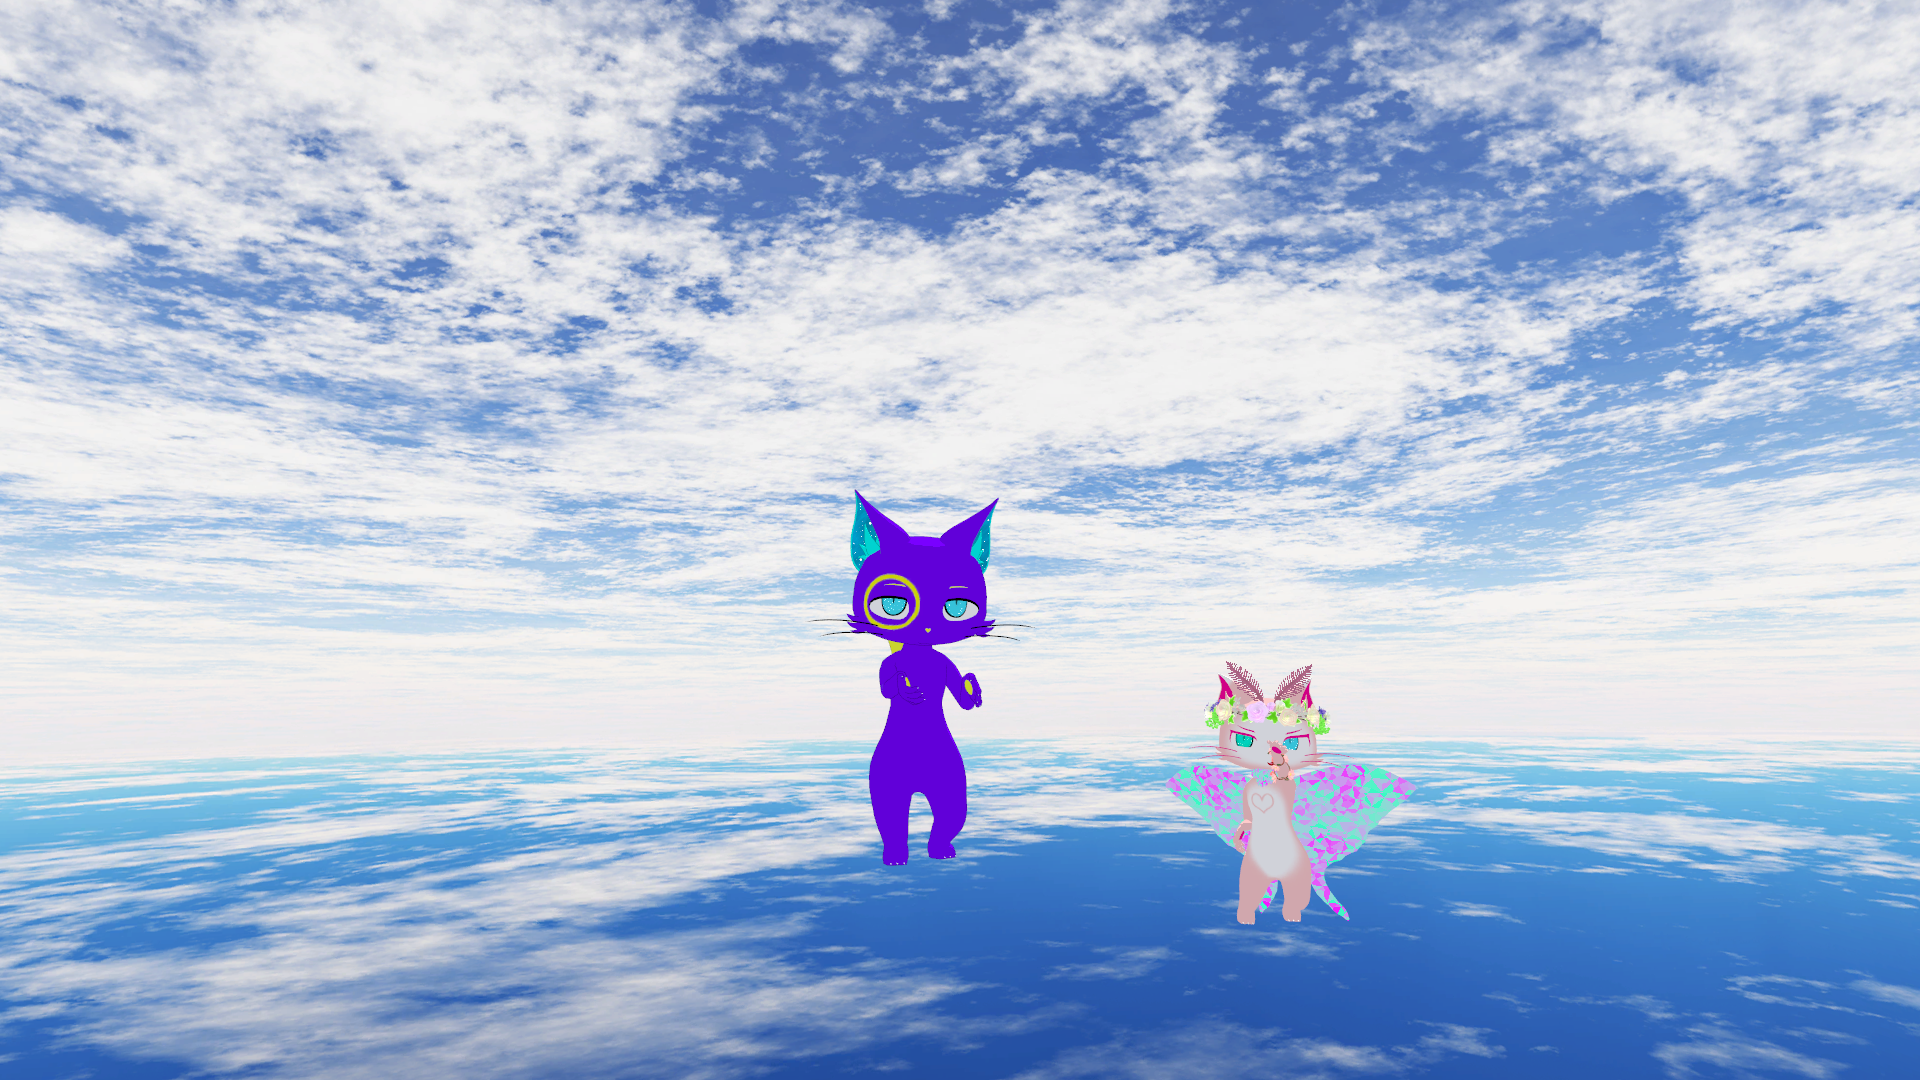 Two cats, one pink with wings and one purple with blue eyes float above ground with the sky above.